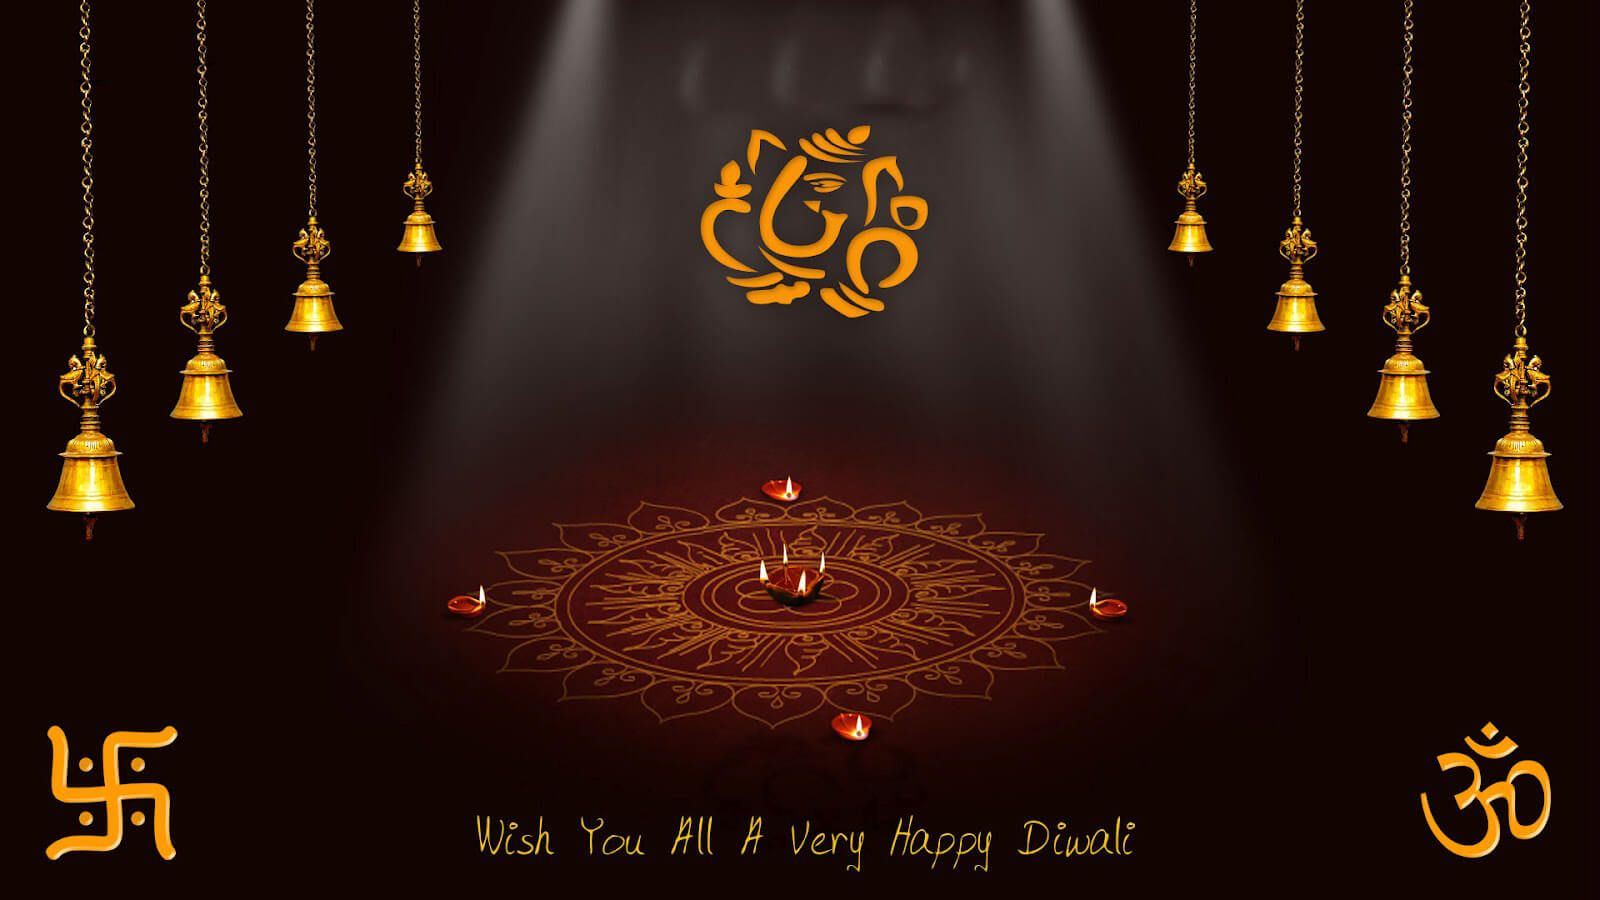 Very happy dipawali and new year all the best dipawali indian happy diwaly holiday hd desktop wallpaper candle wallpaper diwali wallpaper hinduism wallpaper bell wallpaper holidays no kristyandbryce Images